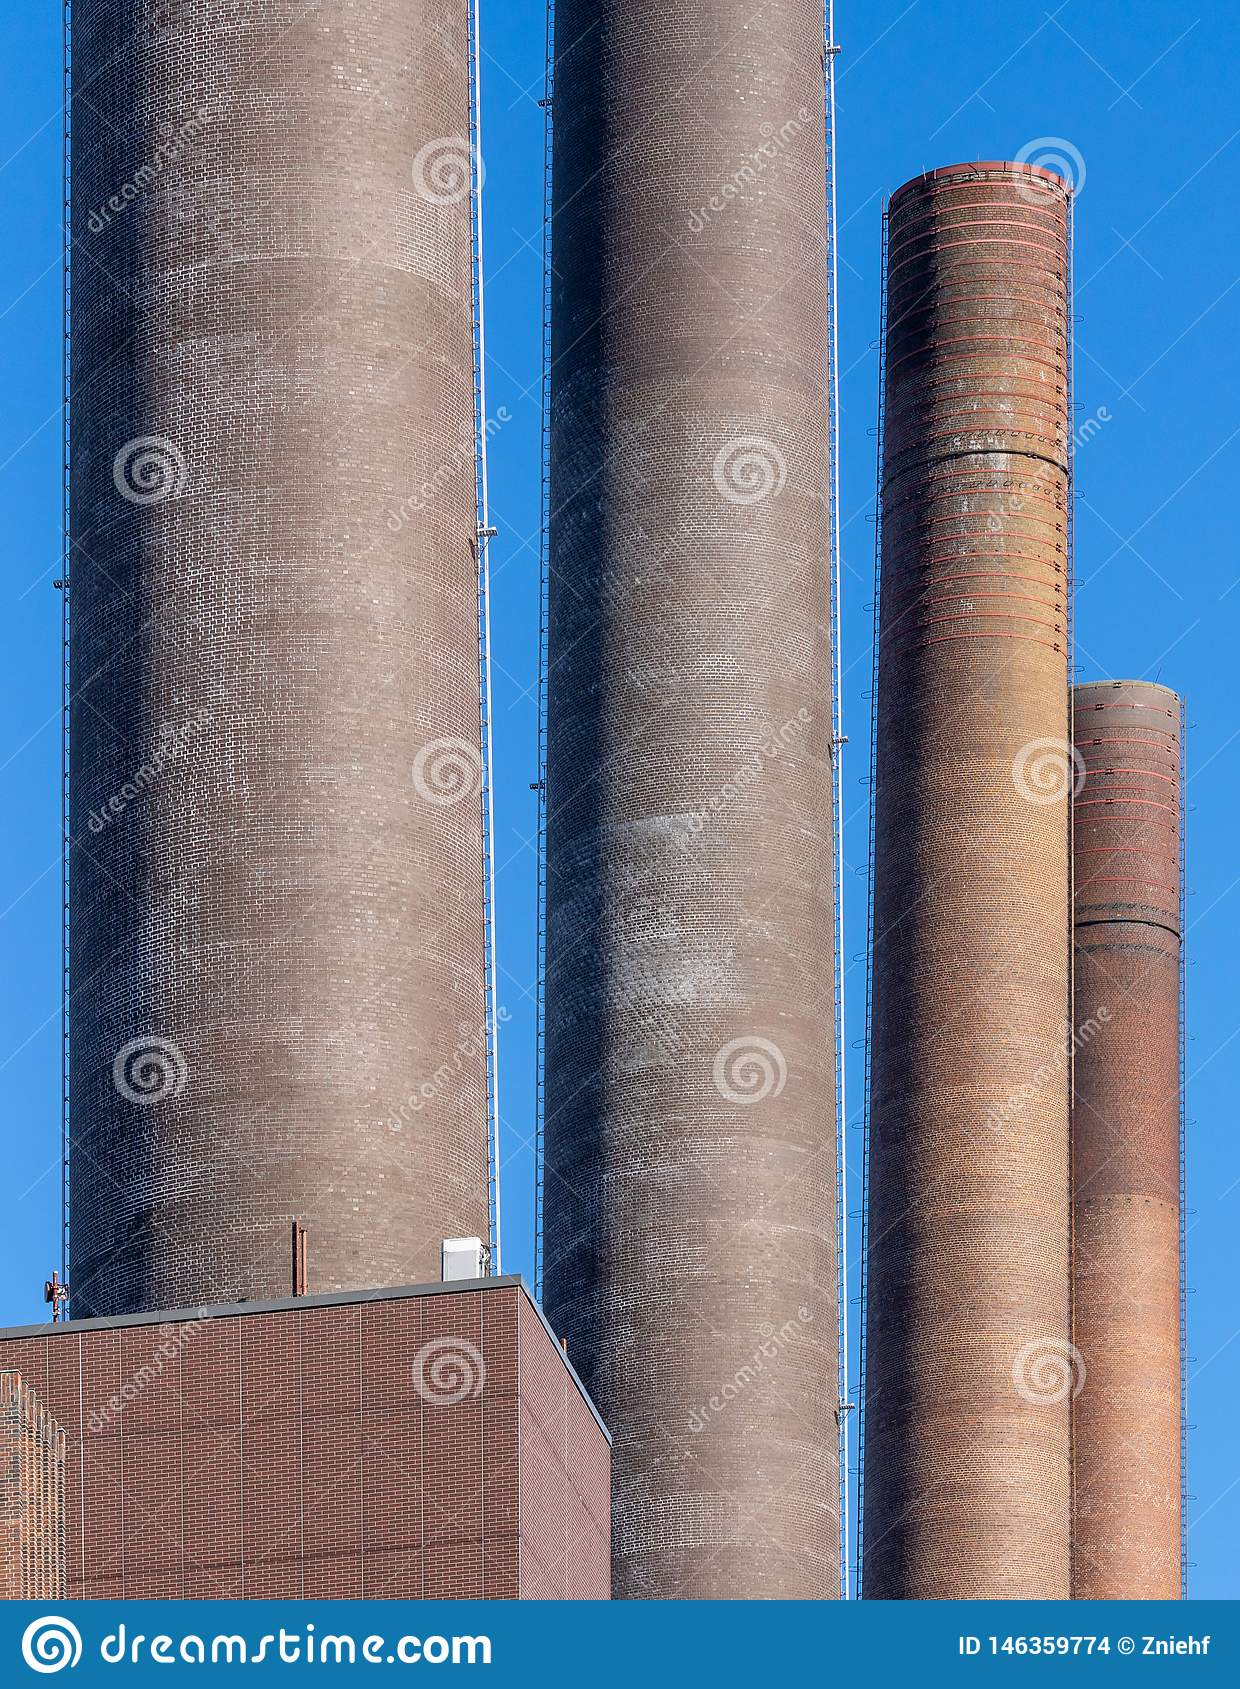 Abstract looking chimneys of the power plant of a large factory